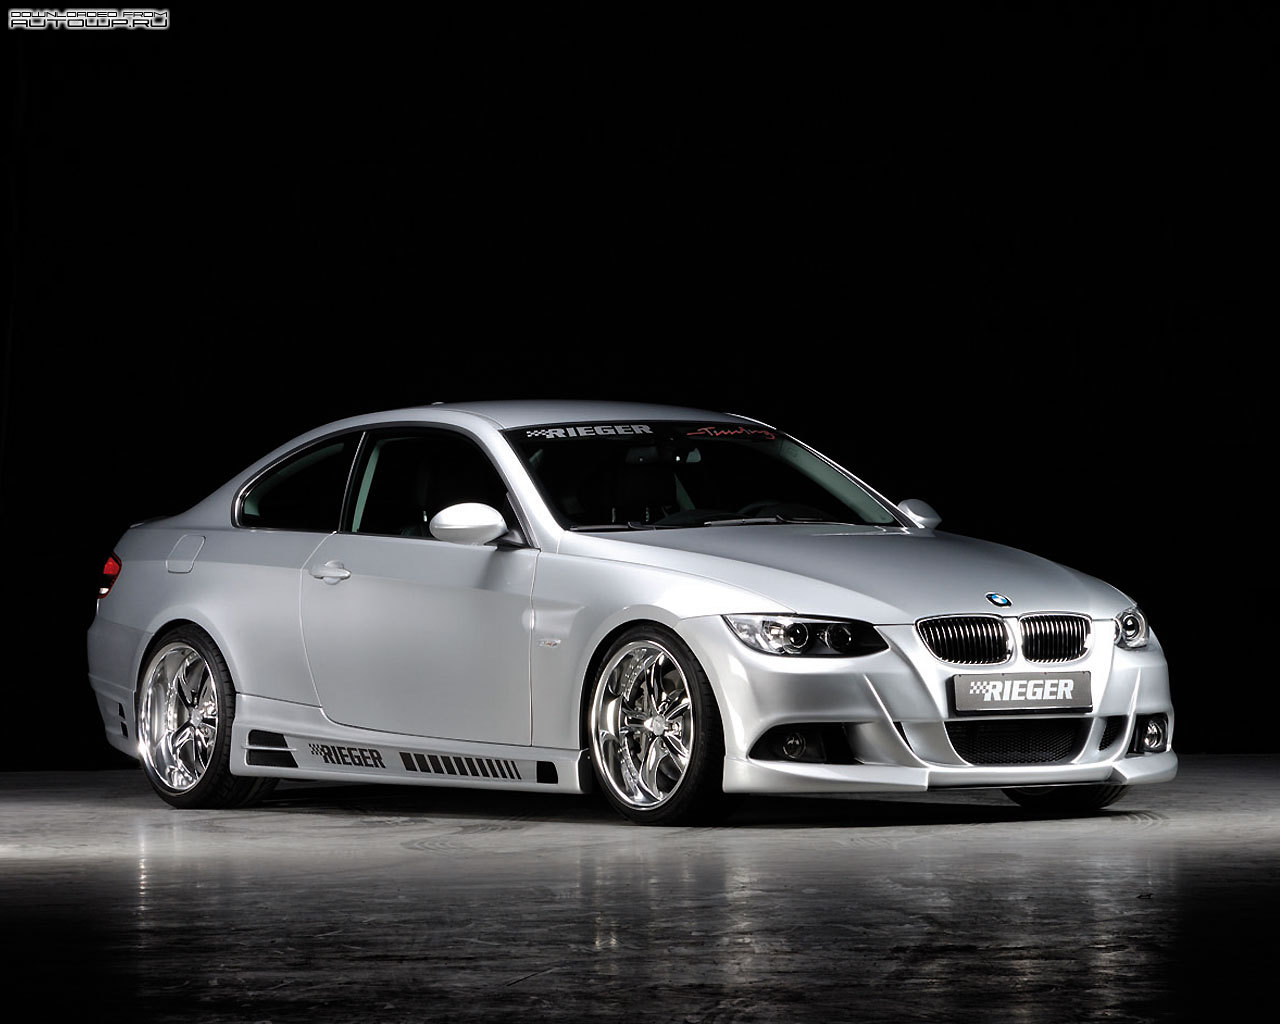 Rieger BMW 3-series Coupe (E92) photo 59146